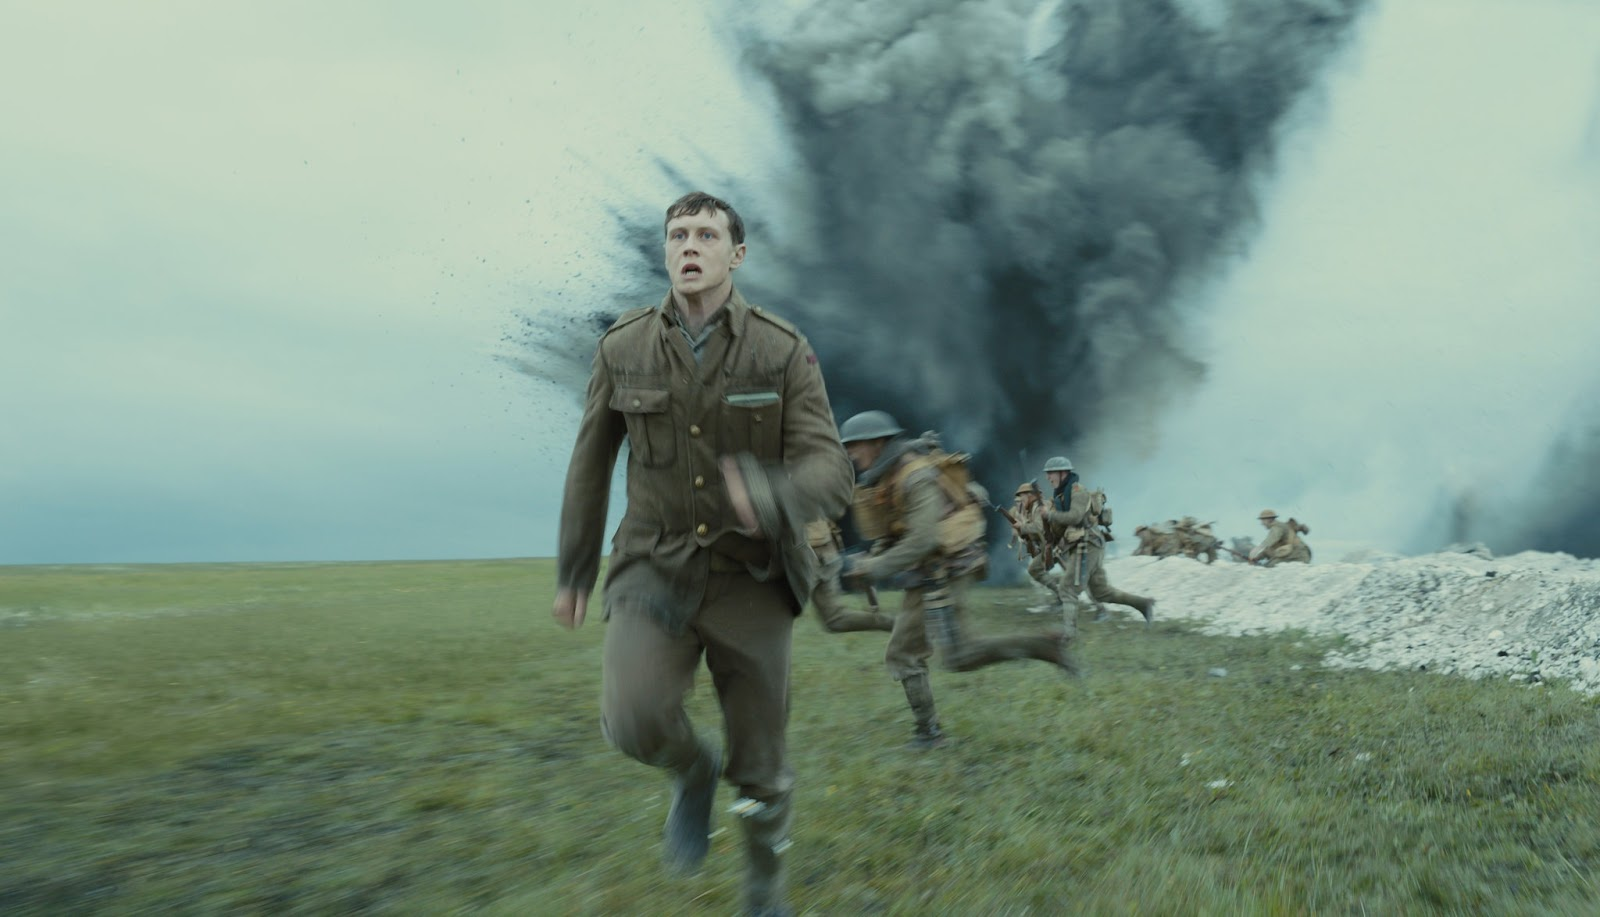 world war 1 soldier running away from a explosion in an open field for blog post about movie 1917